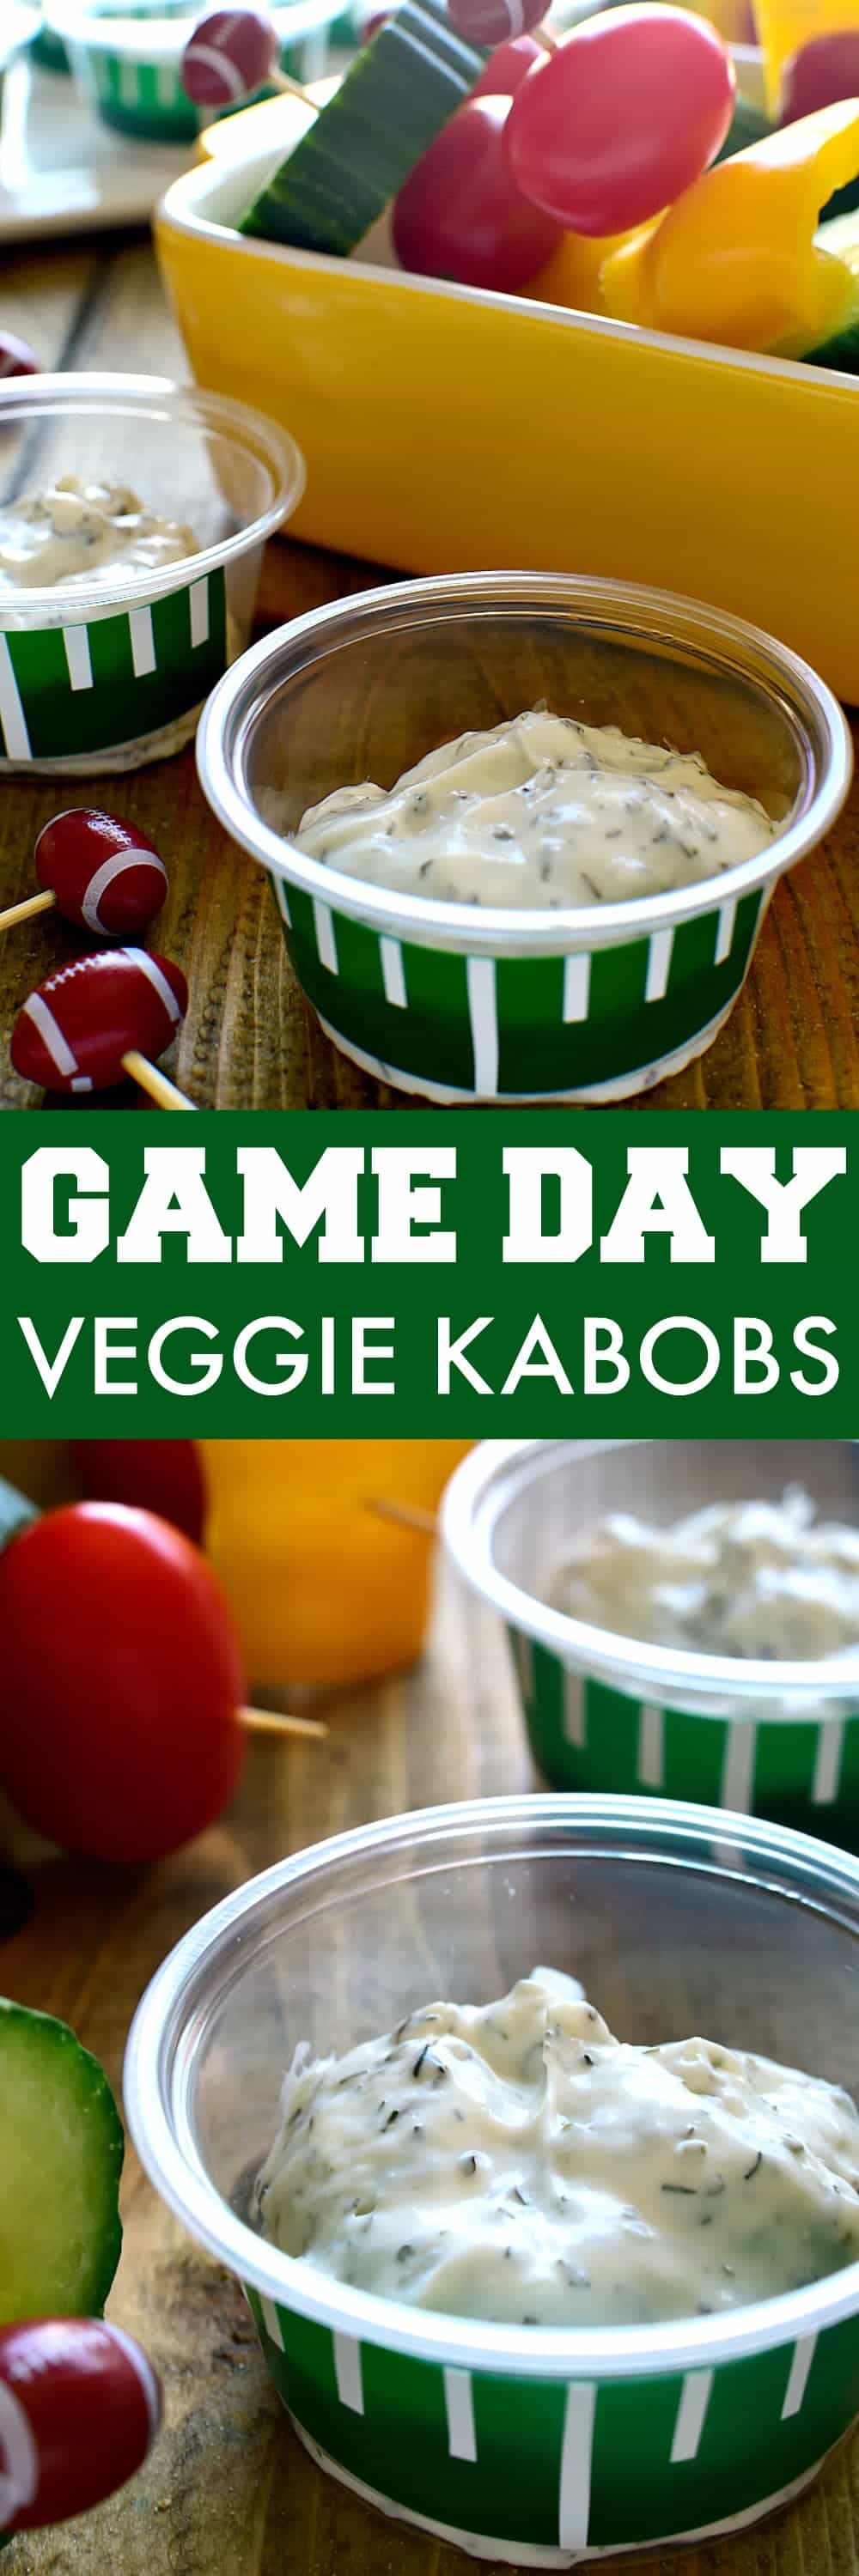 Game Day Veggie Kabobs are so easy to make and perfect for the big game! Quick and simple, this is guaranteed to have everyone eating their veggies!